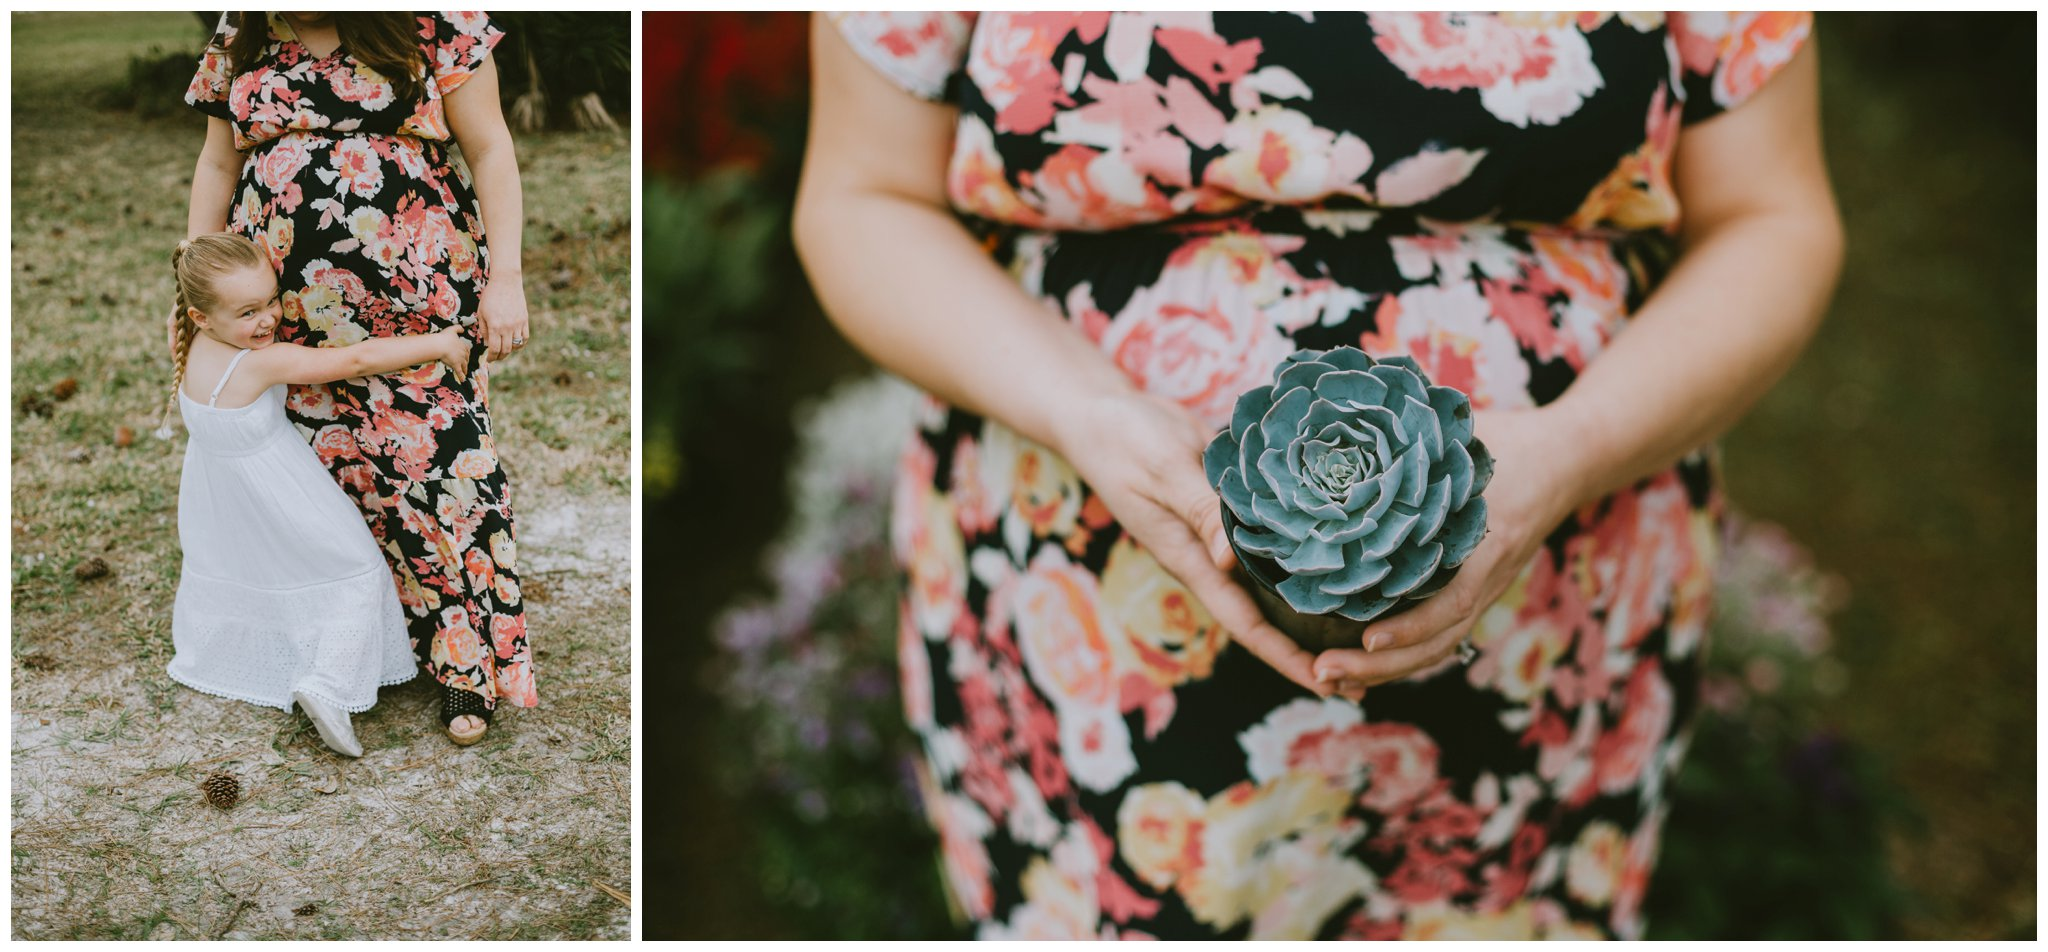 Kimberly Smith Photography| Port St Lucie Botanical Gardens| Maternity Photos| Jupiter Florida Photographer | Stuart Fl photographer_0185.jpg